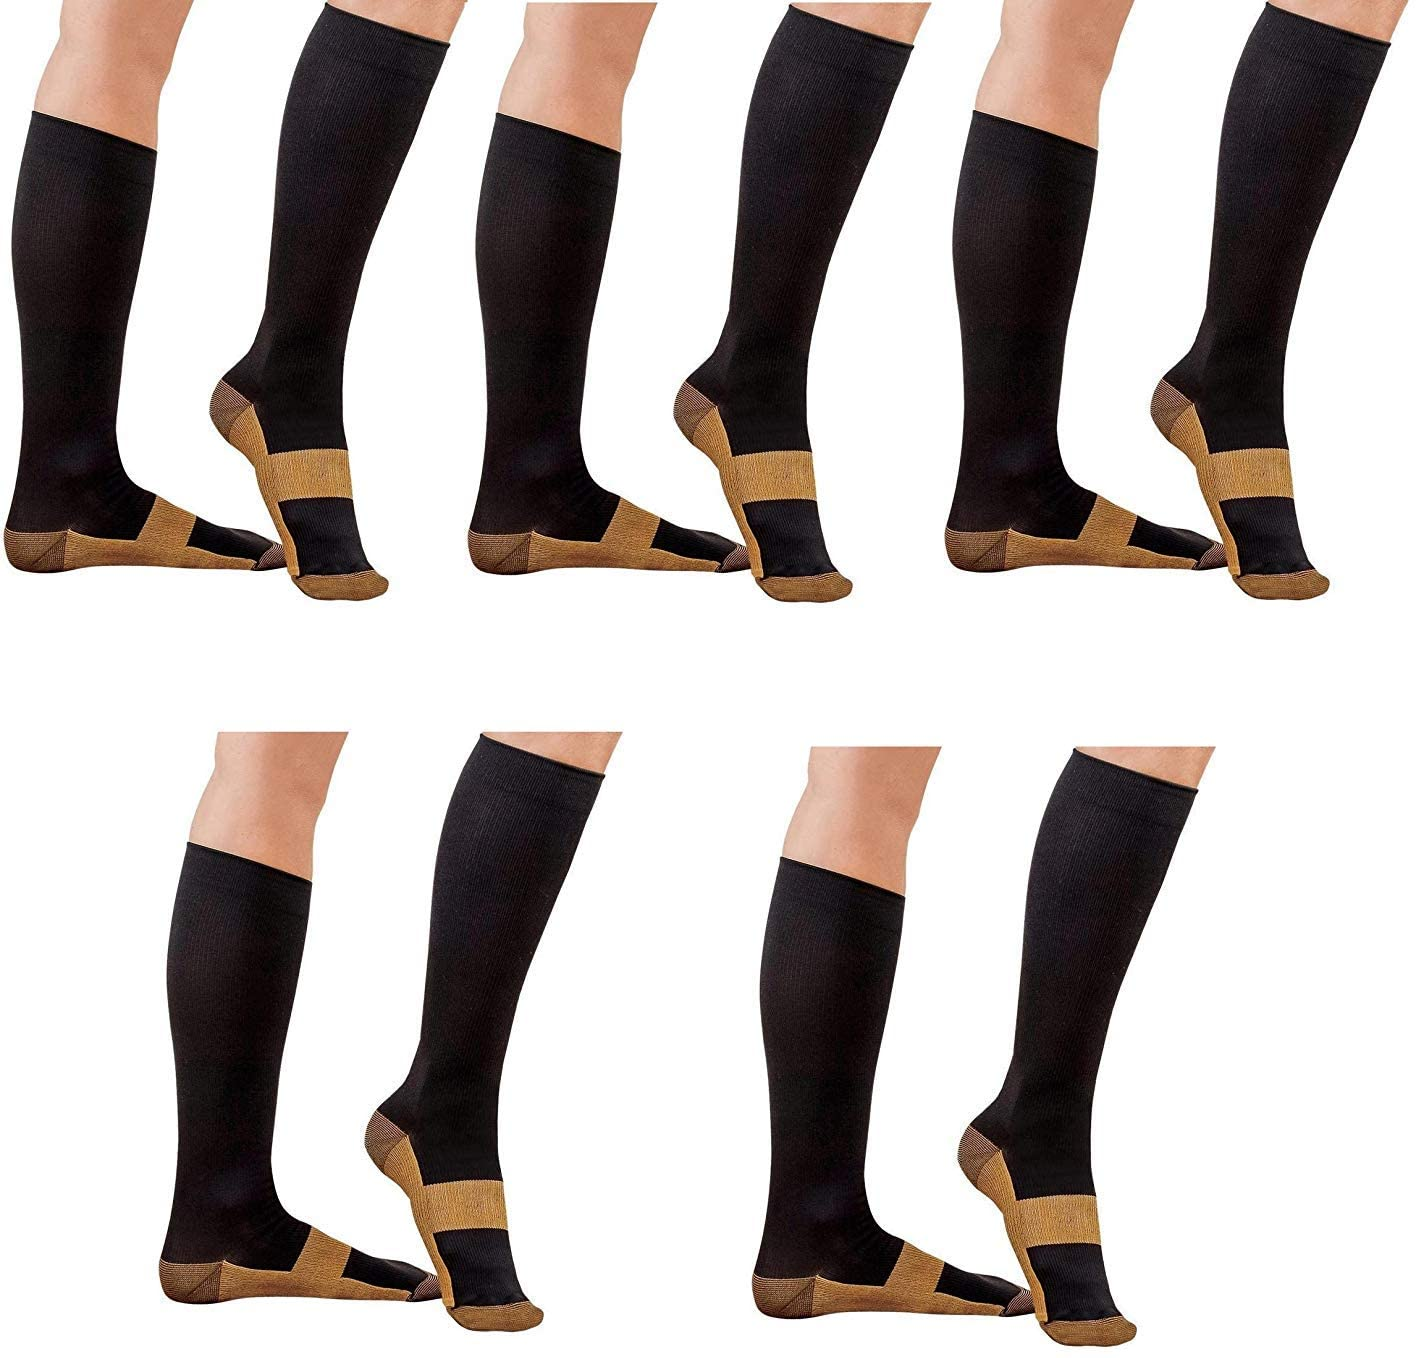 ASRocky Graduated Compression Copper Socks Anti-Fatigue Calf High Below Knee Mens Womens Foot Ankle Heel Support Pain Relief Sport Medical Stockings Reduce Swelling (5Pr, XXL, Blk/Cu)